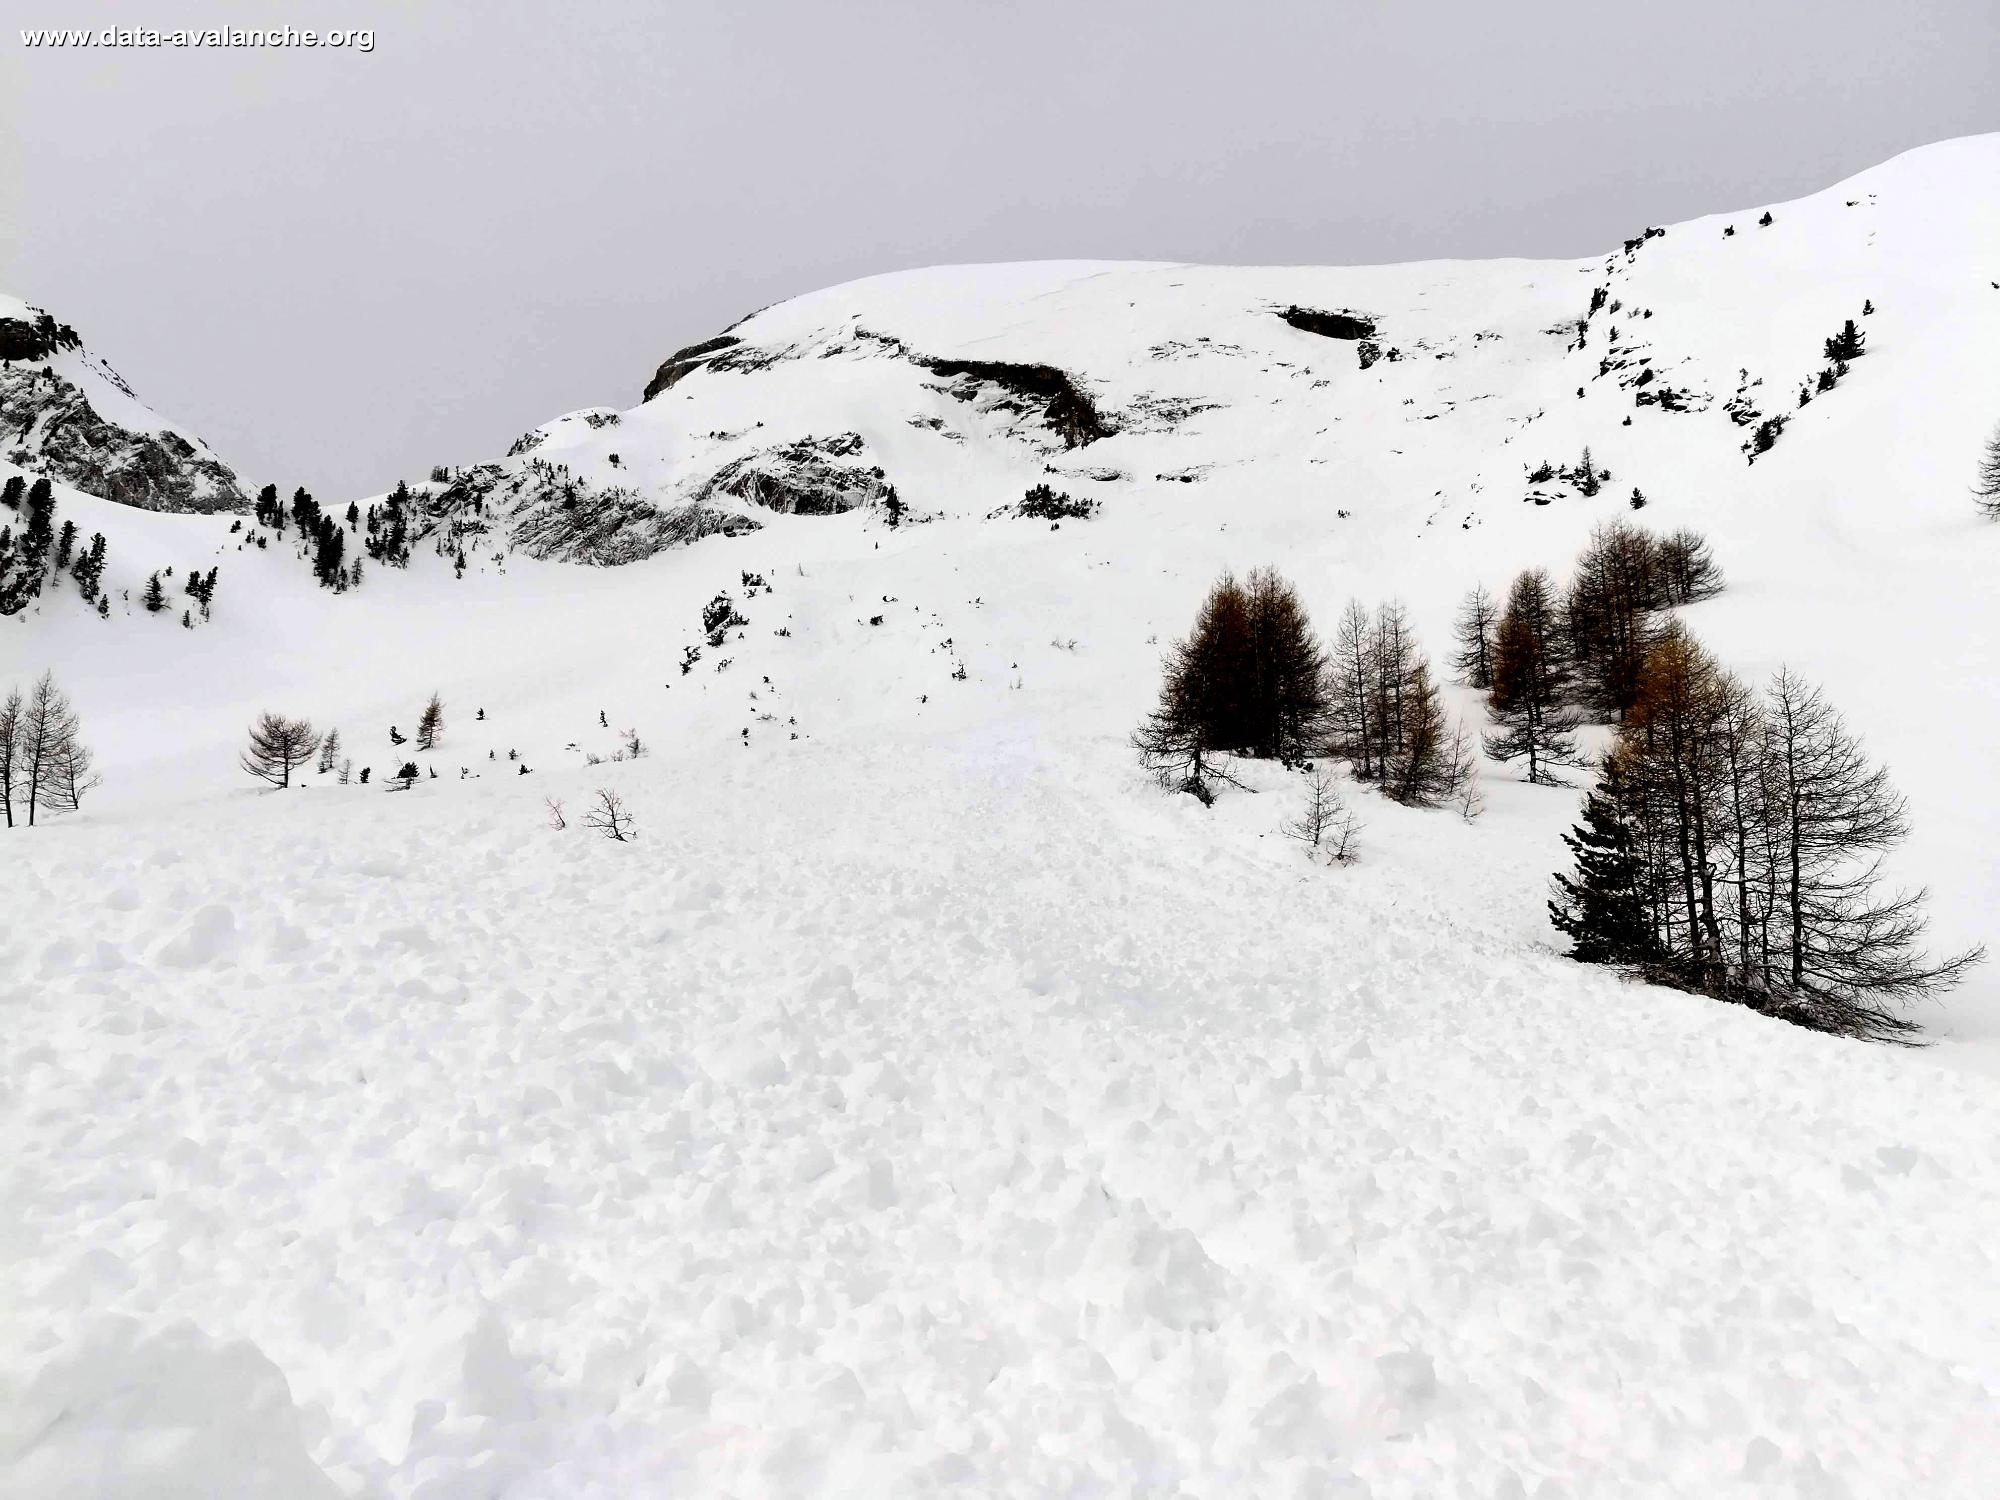 Avalanche Ubaye, Vallon de l'Encoungoura - Photo 1 - © Agnès VIVAT